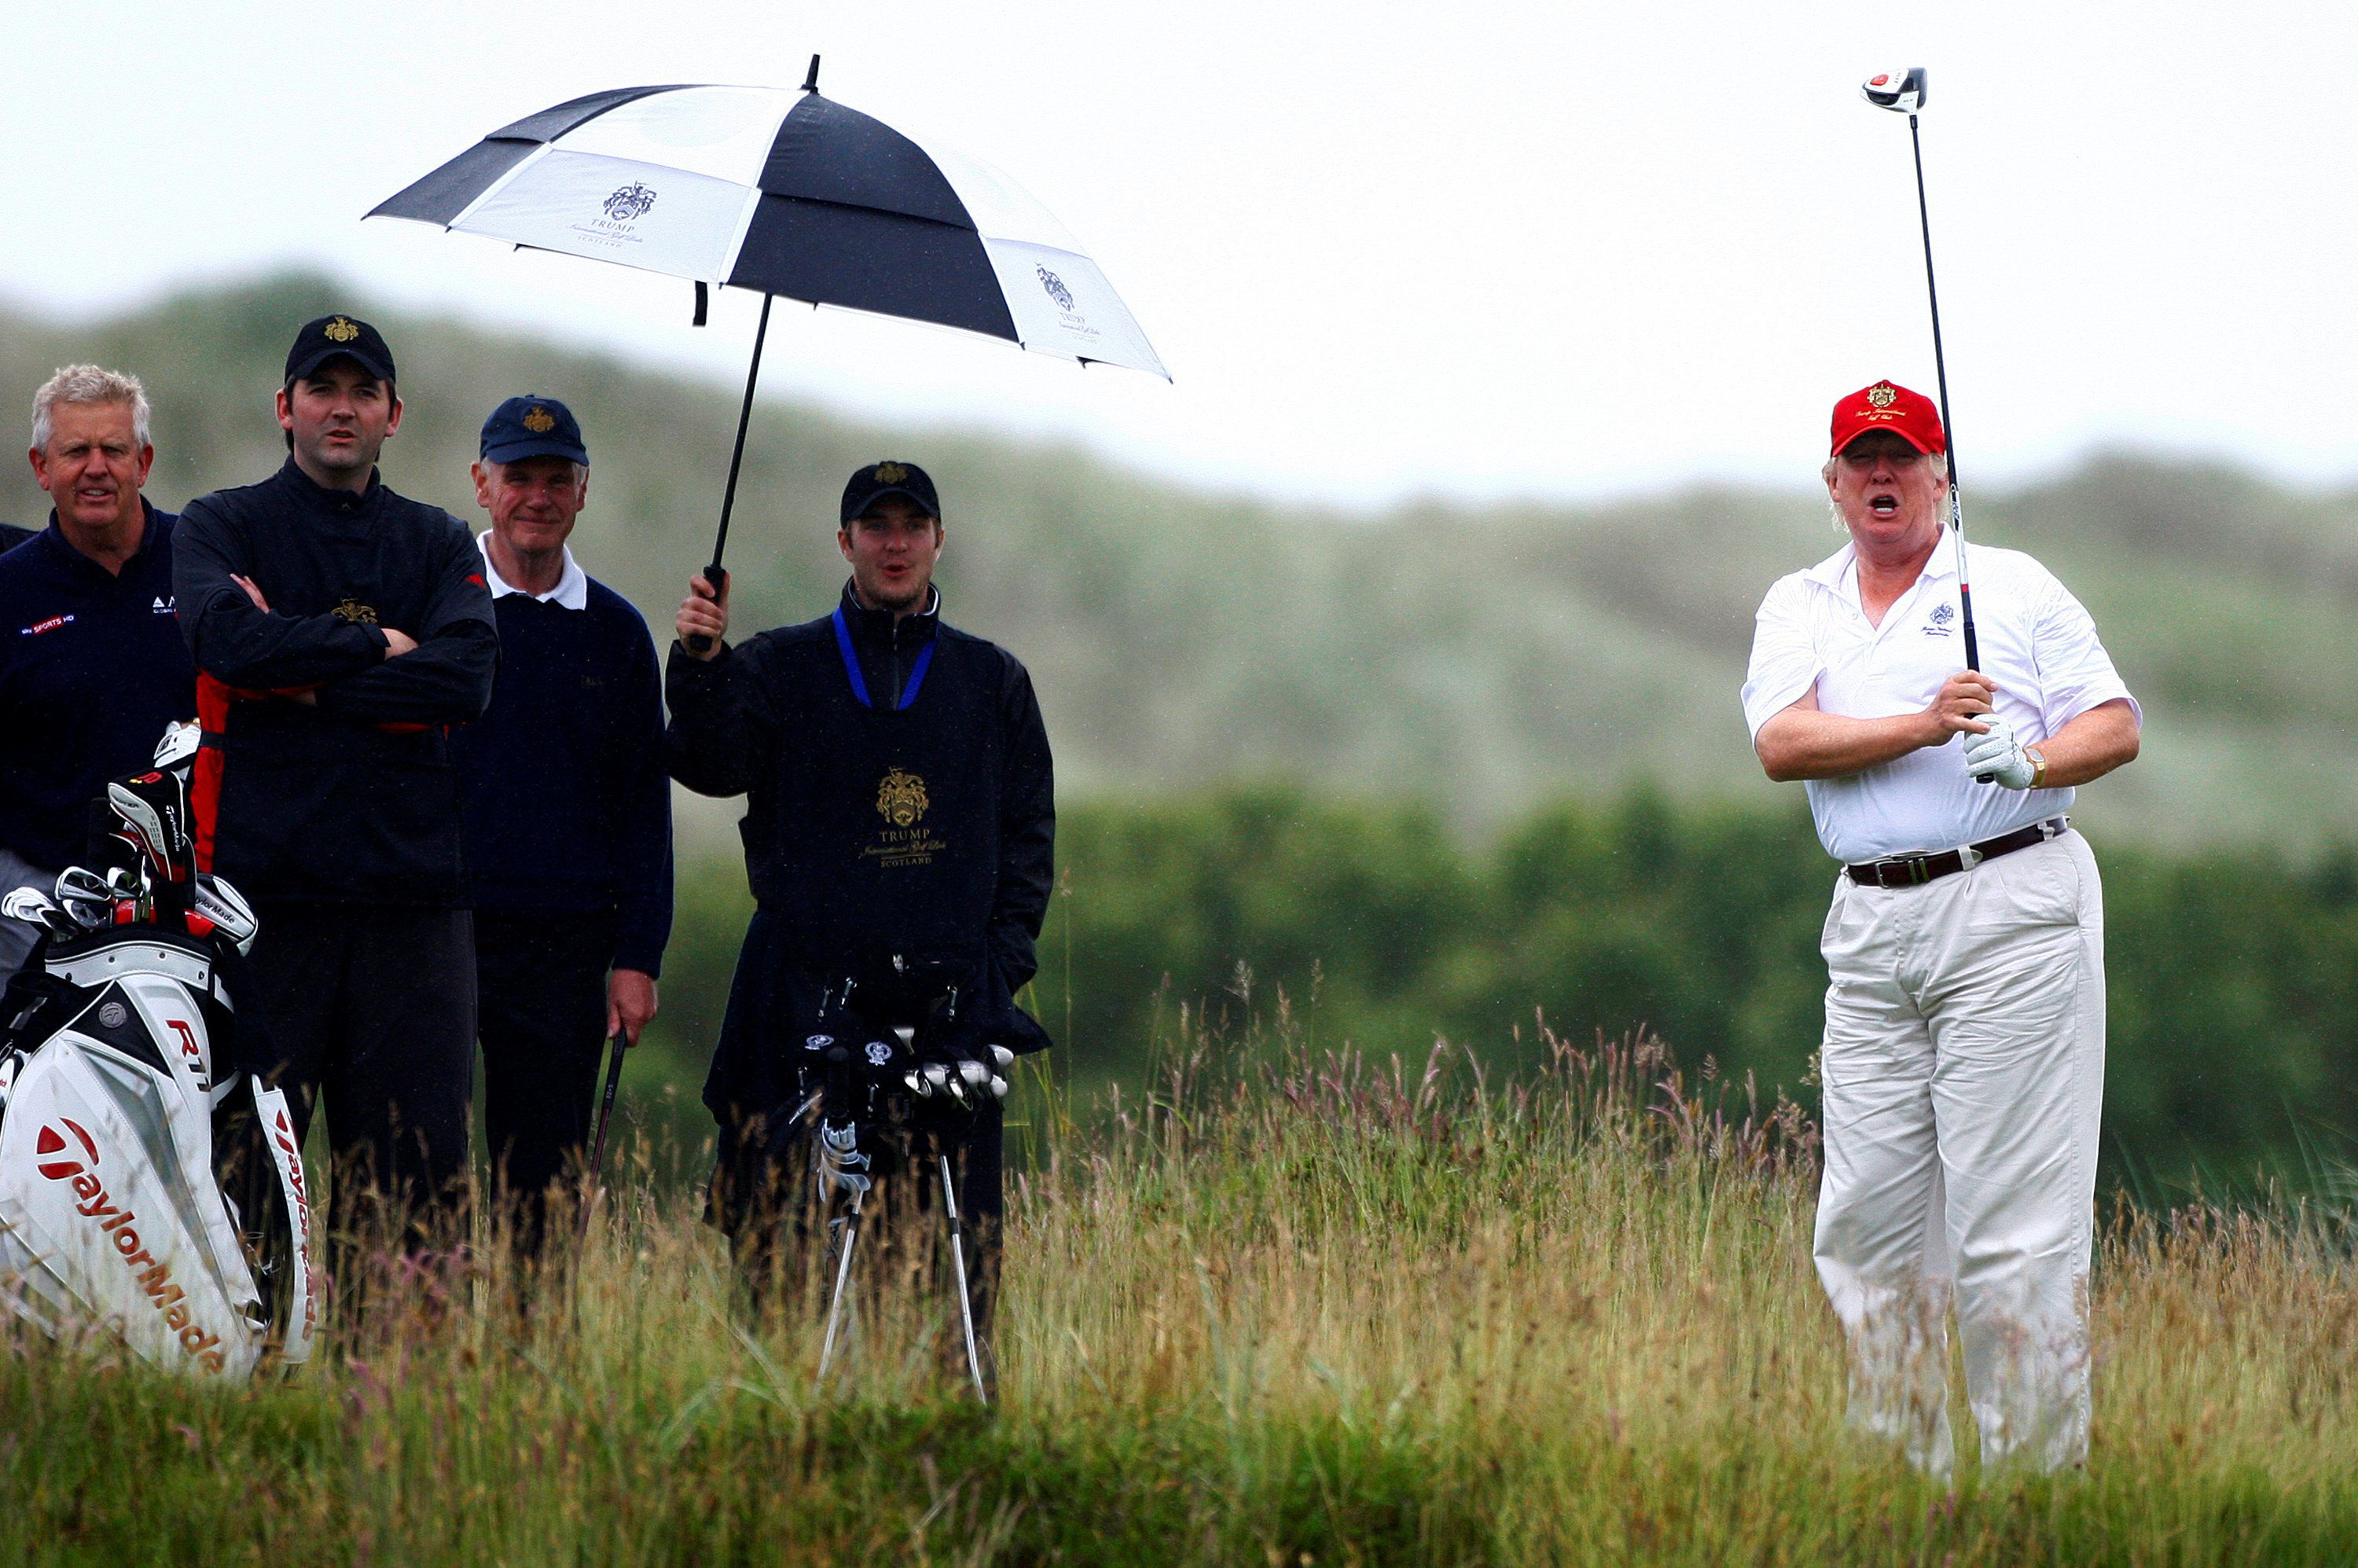 """Real estate magnate Donald Trump (R) plays golf during the opening of his Trump International Golf Links golf course near Aberdeen, northeast Scotland July 10, 2012. REUTERS/David Moir/File Photo                  FROM THE FILES PACKAGE """"THE CANDIDATES"""" - SEARCH CANDIDATES FILES FOR ALL 90 IMAGES"""